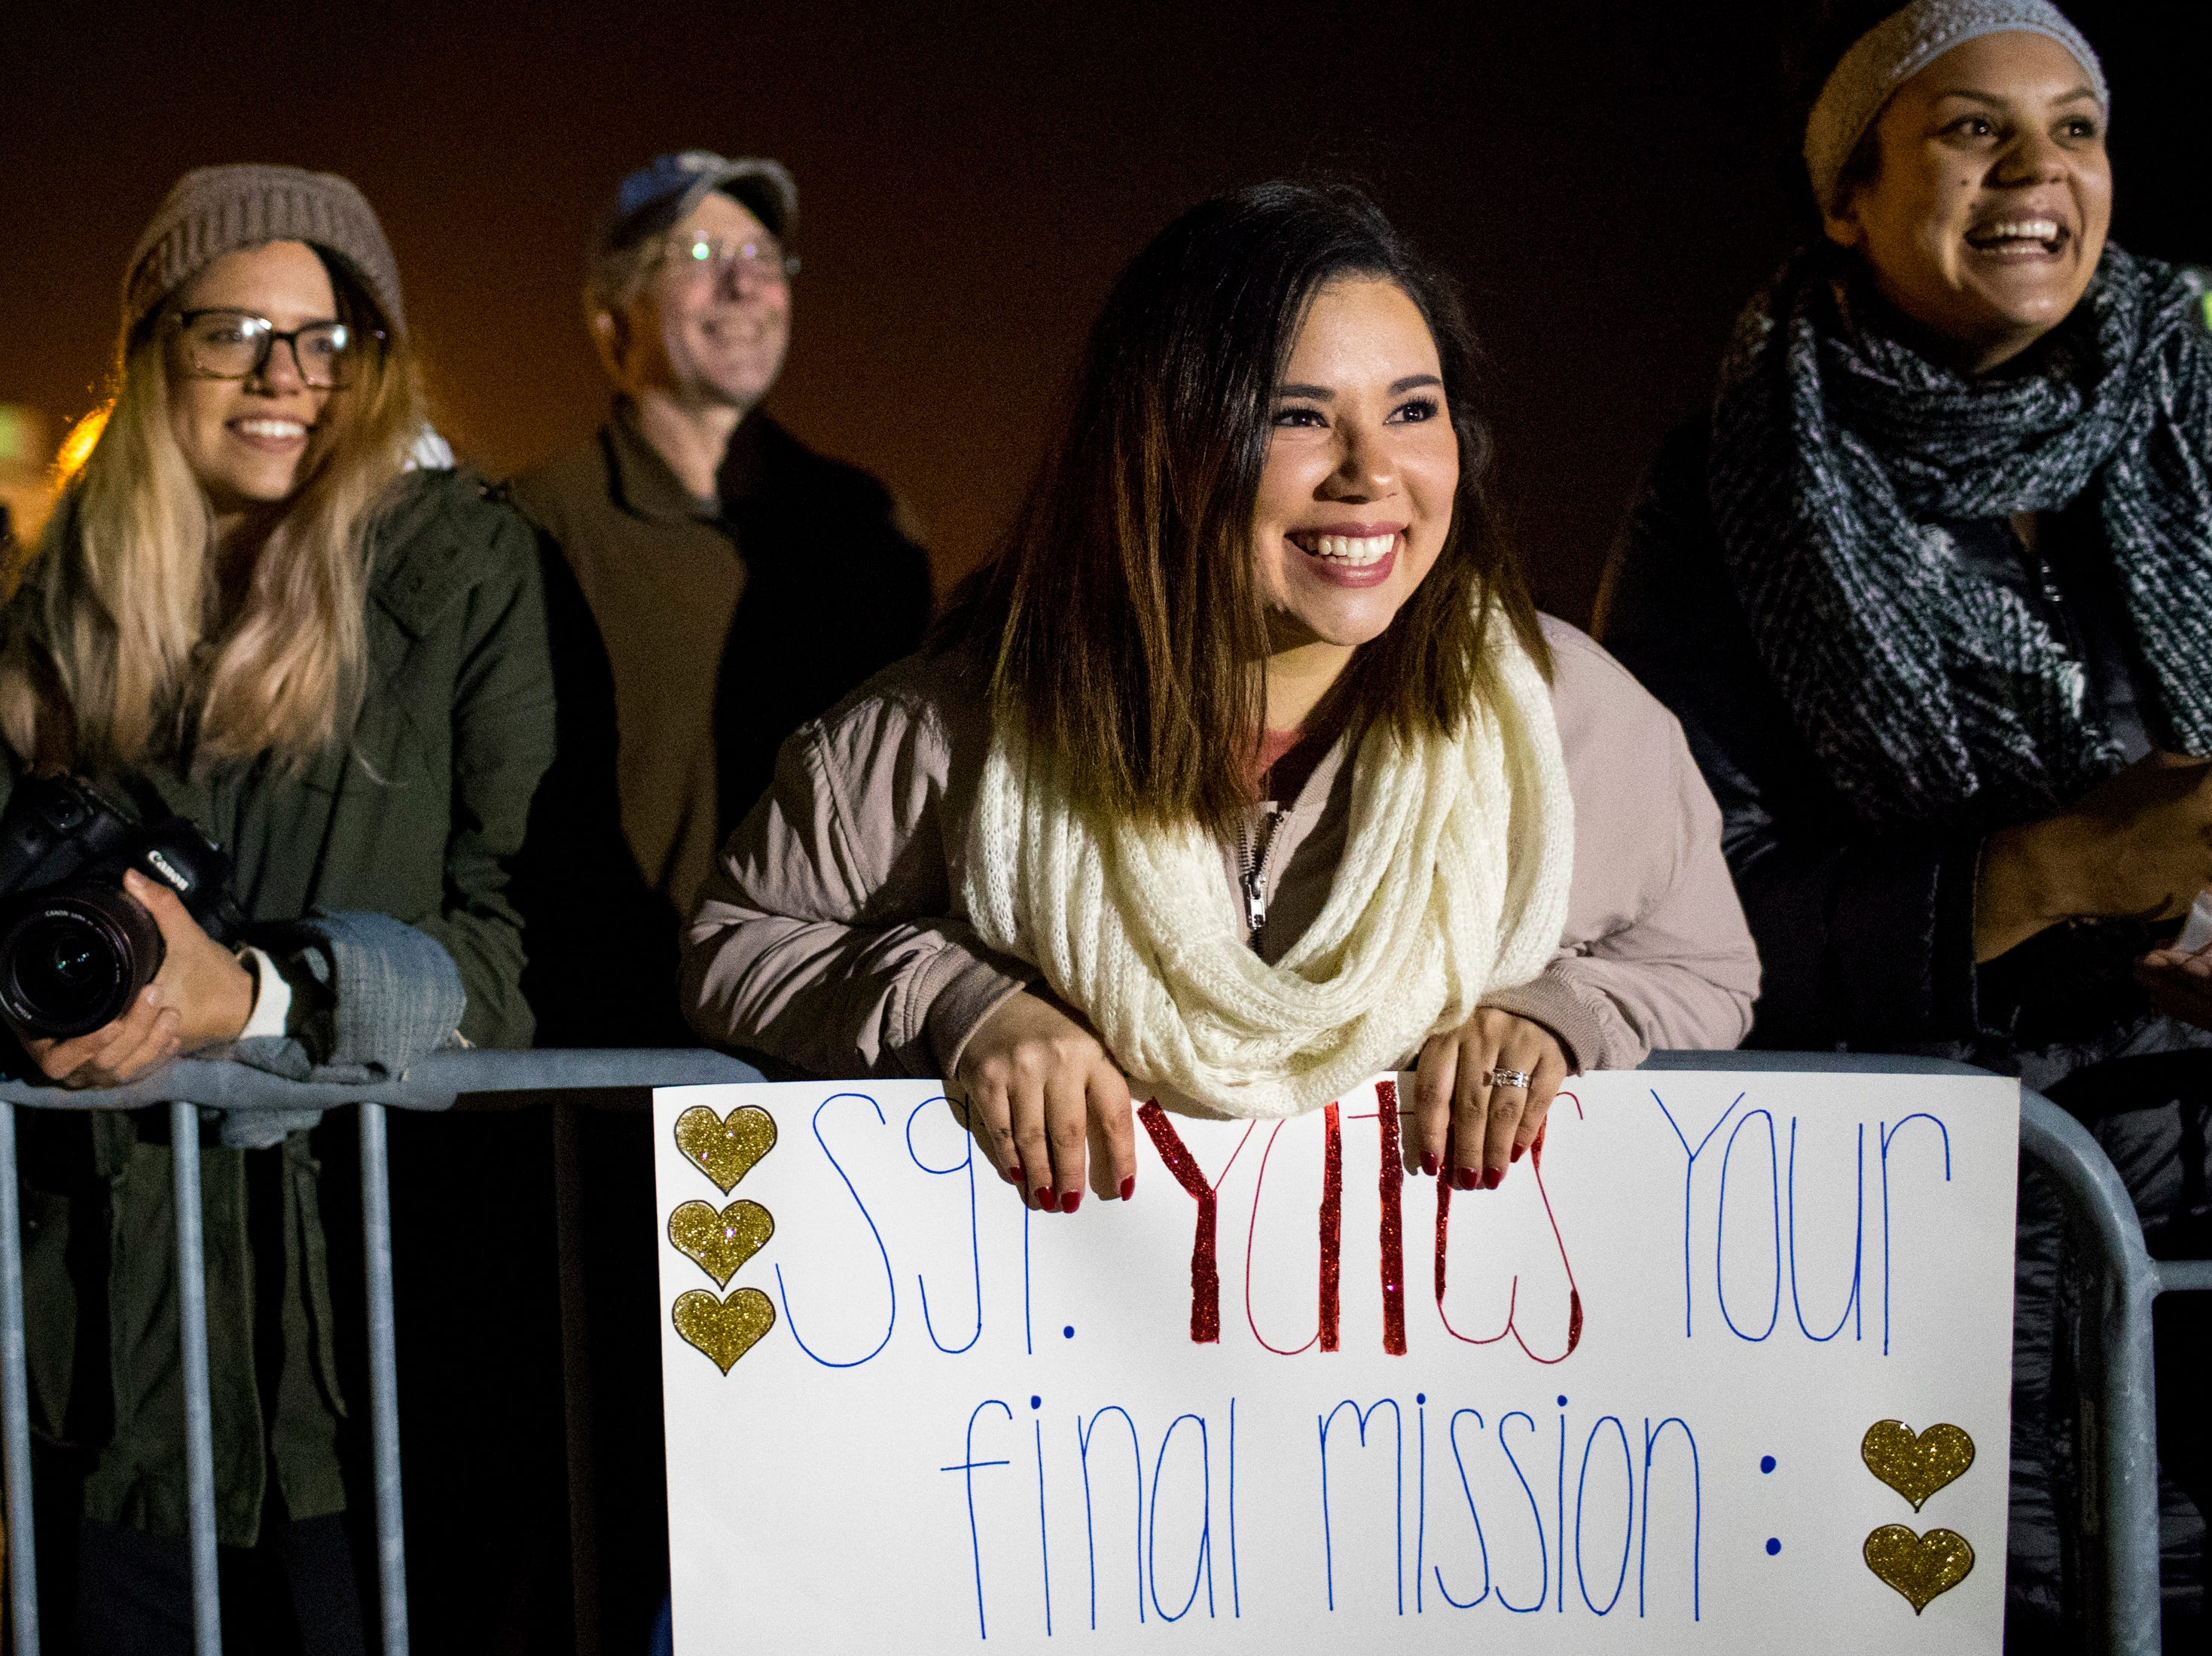 Felicia Yates smiles as she watches her husband, Sgt. Nicholas Yates, deplane during the welcome home ceremony for the 2nd Battalion, 44th Air Defense Artillery Regiment and 101st Airborne Division at Fort Campbell in the early hours of Monday, Nov. 19, 2018. The soldiers were returning from a 9-month deployment in Afghanistan.